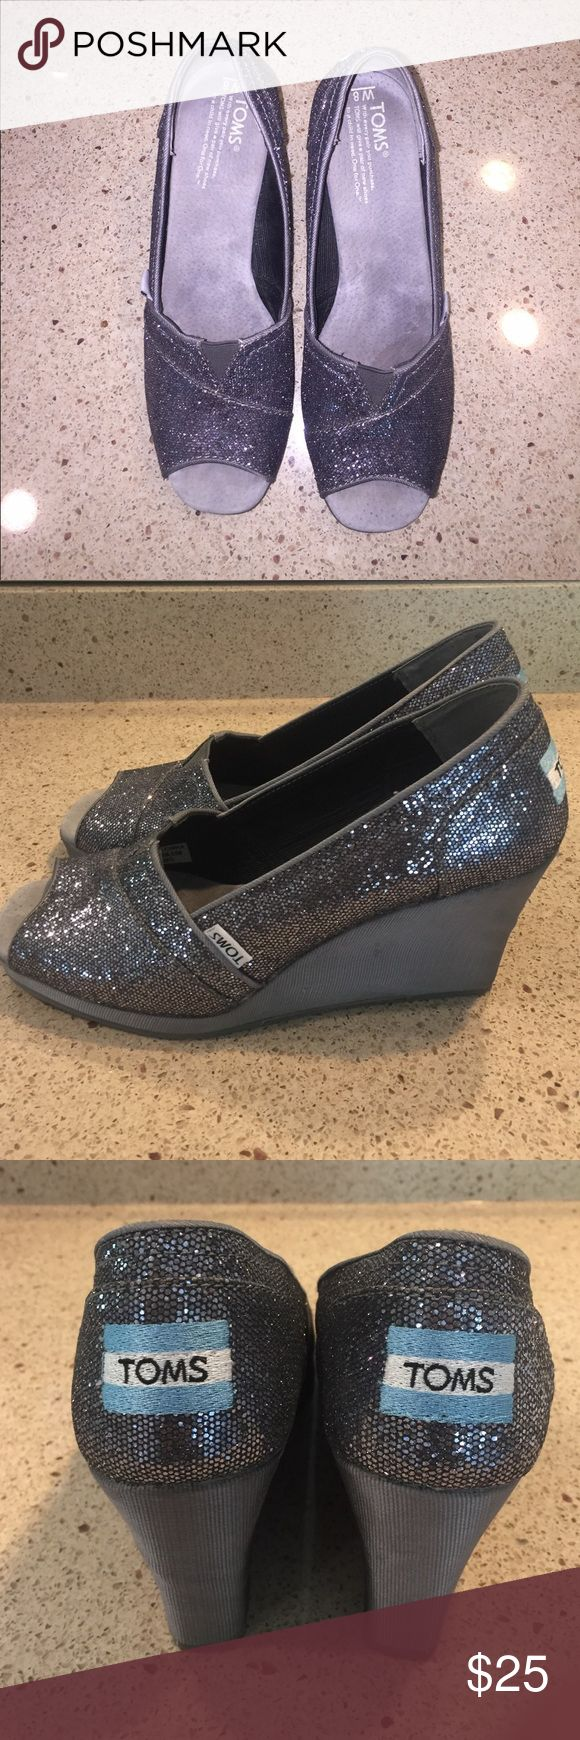 Silver Toms Wedges Sparkly silver Tom's wedges. Worn a handful of times. Great condition. Very comfortable. TOMS Shoes Wedges